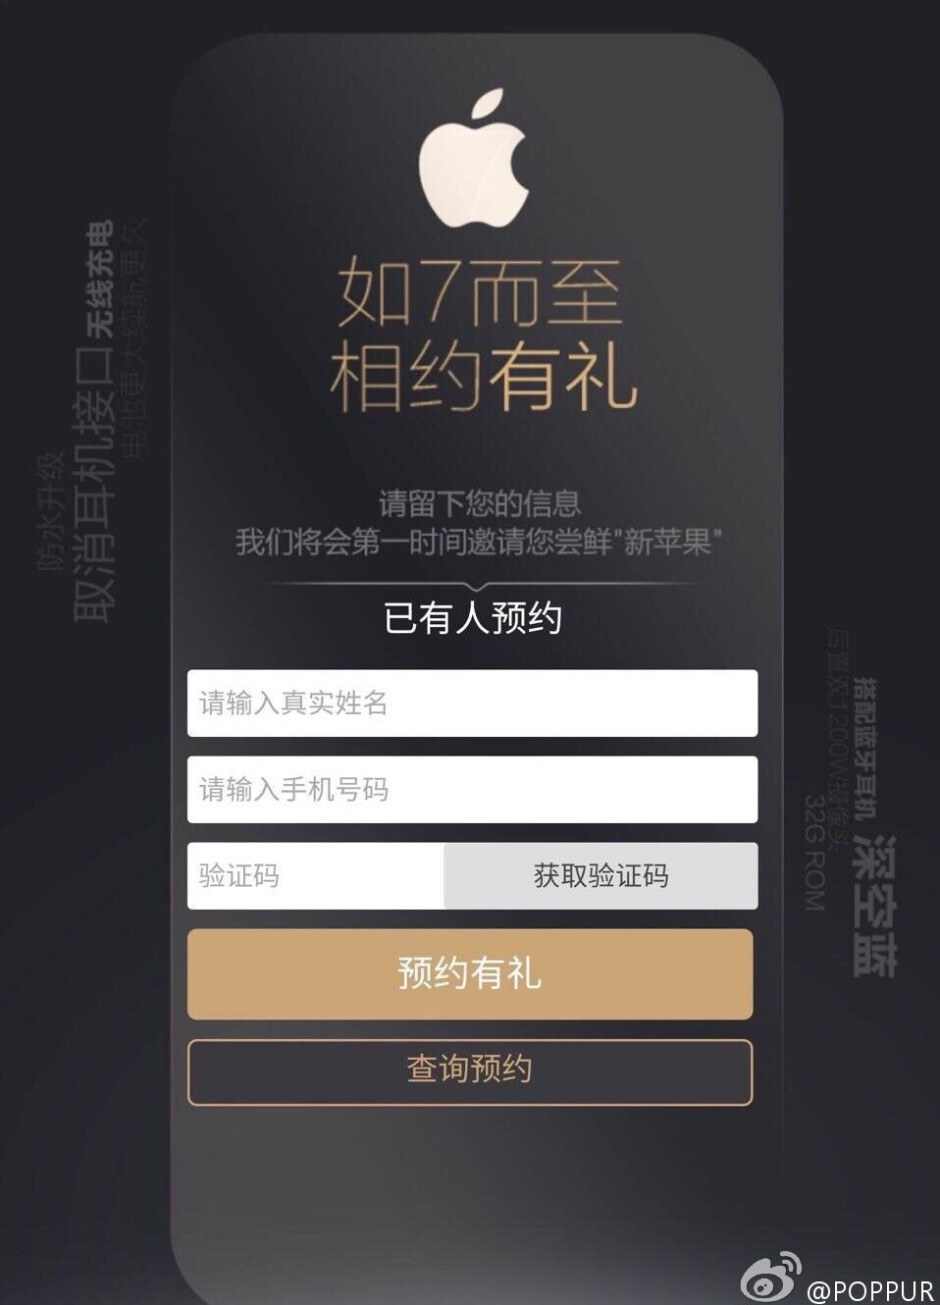 Picture allegedly shows China Mobile's registration page for the Apple iPhone 7 Plus - China Mobile's registration page for the Apple iPhone 7 Plus makes an early appearance?